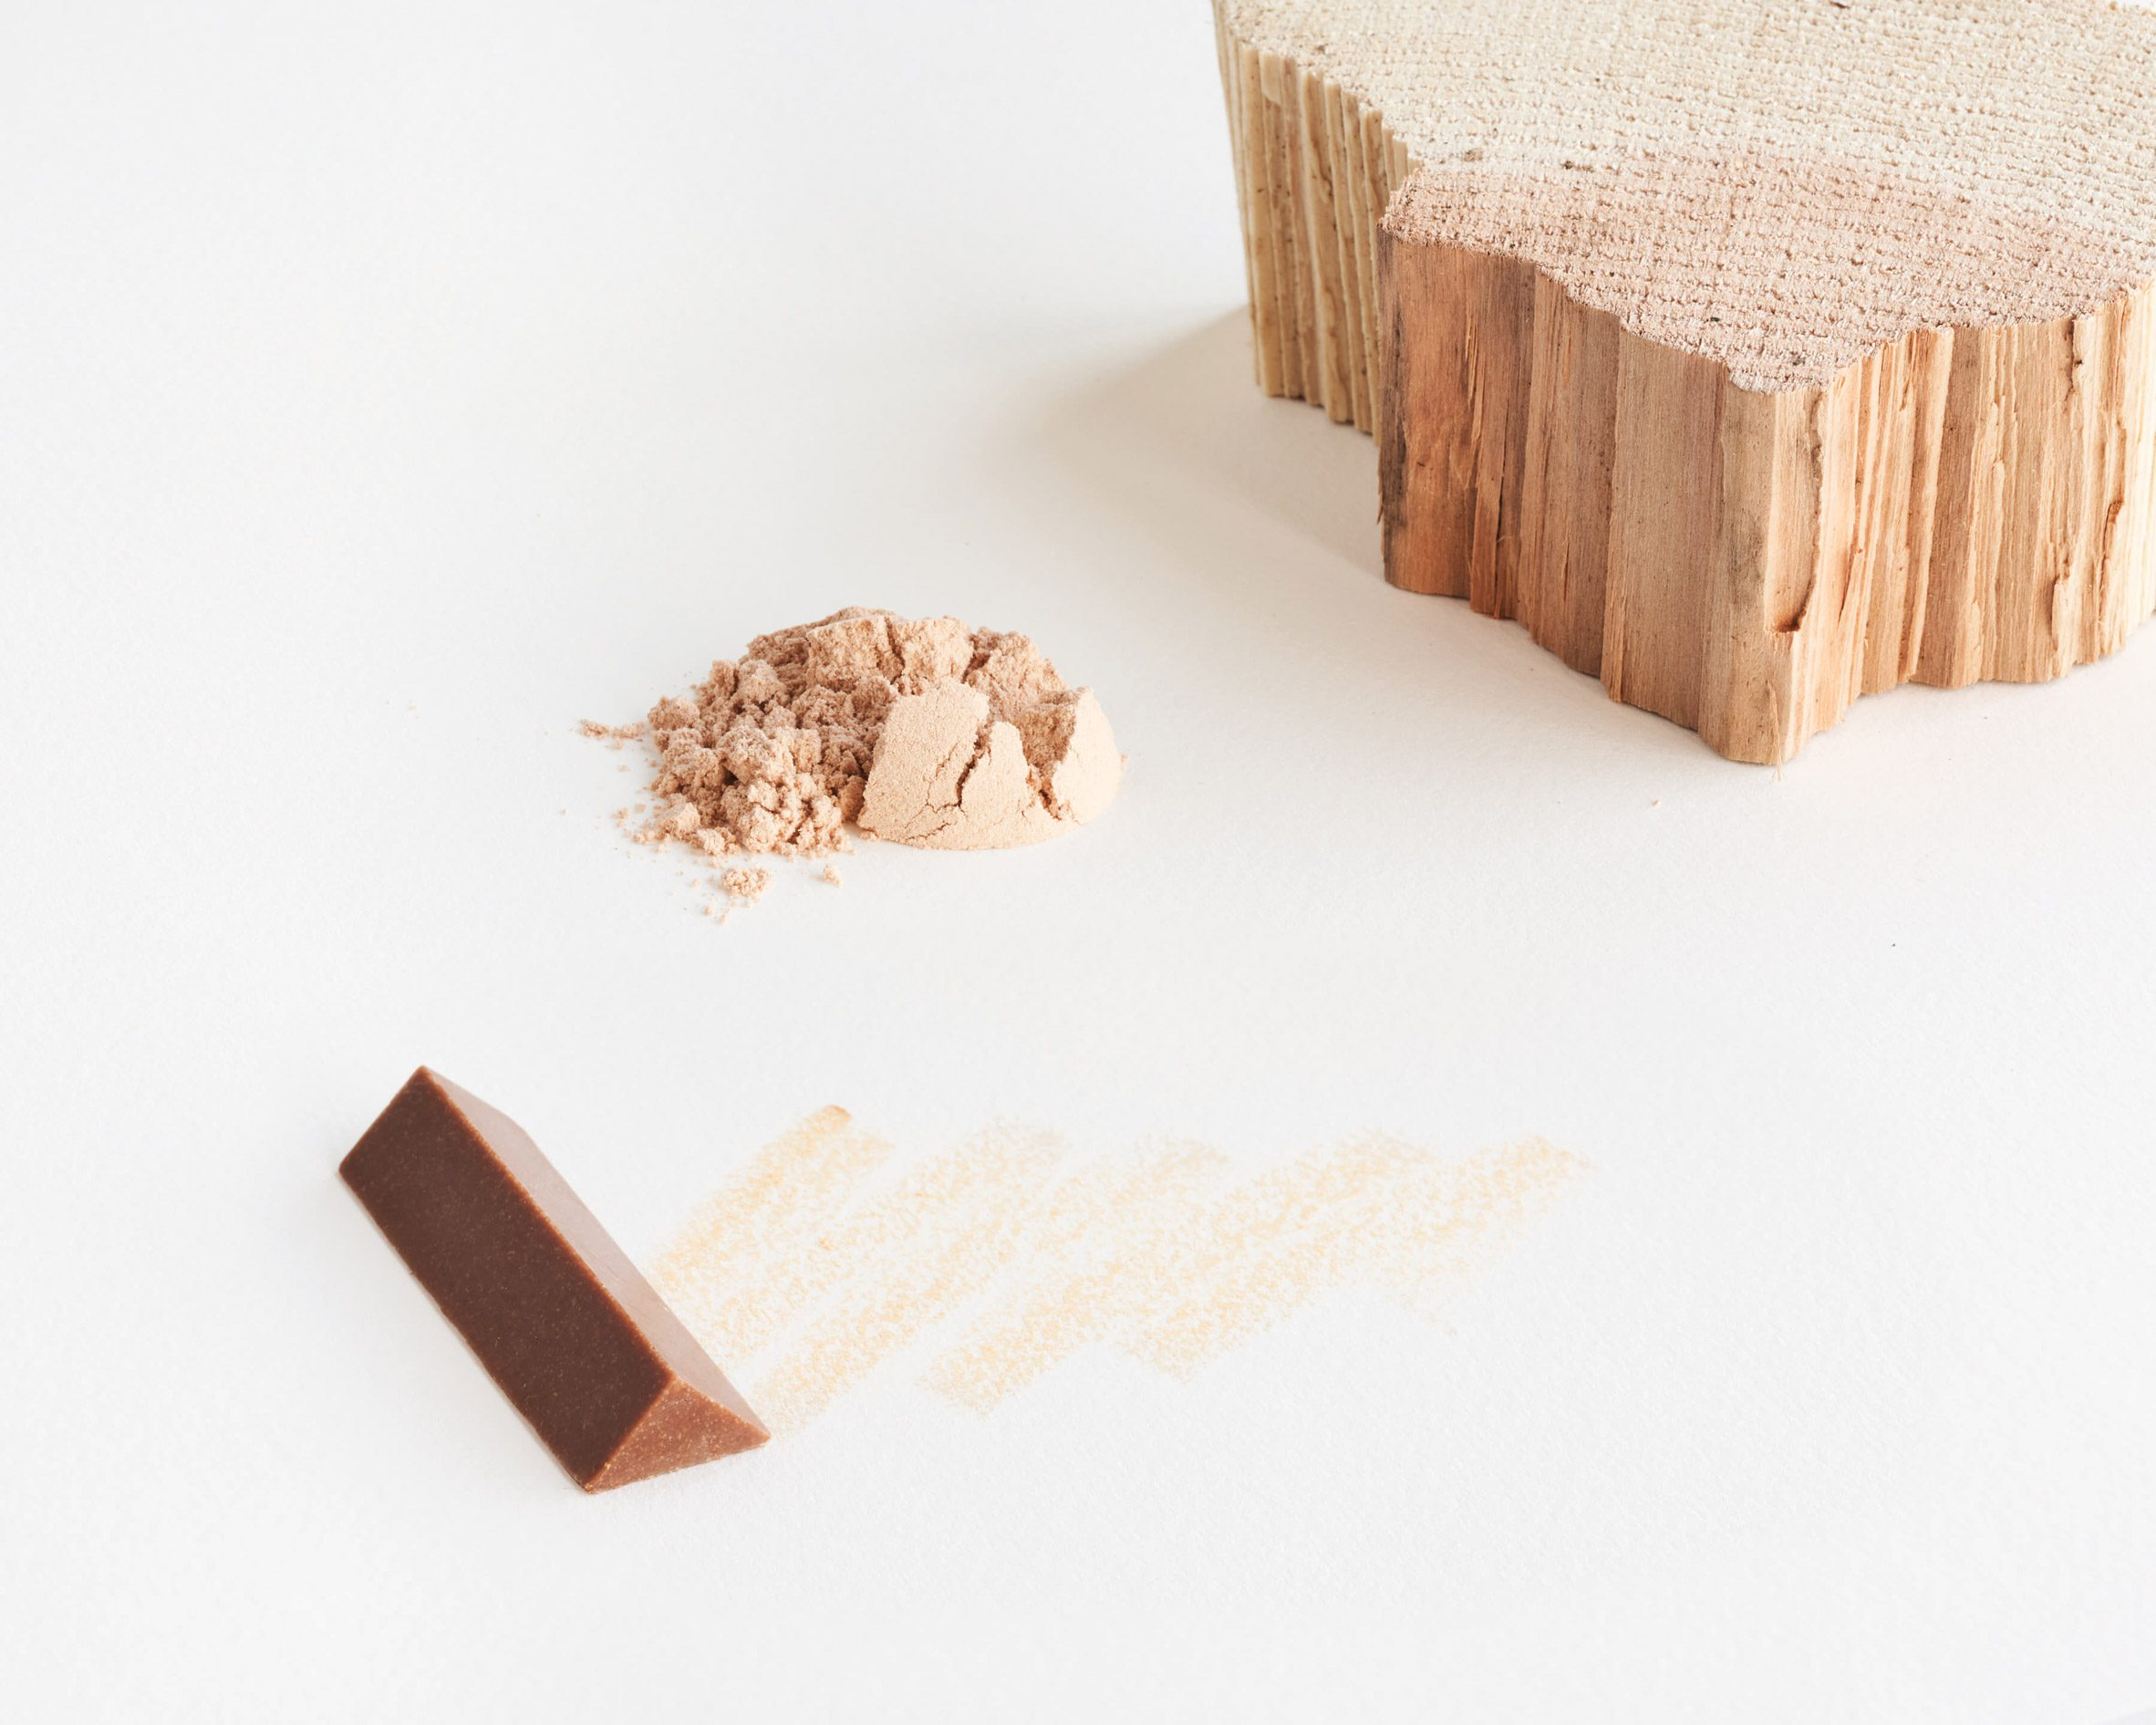 Finely-ground wood